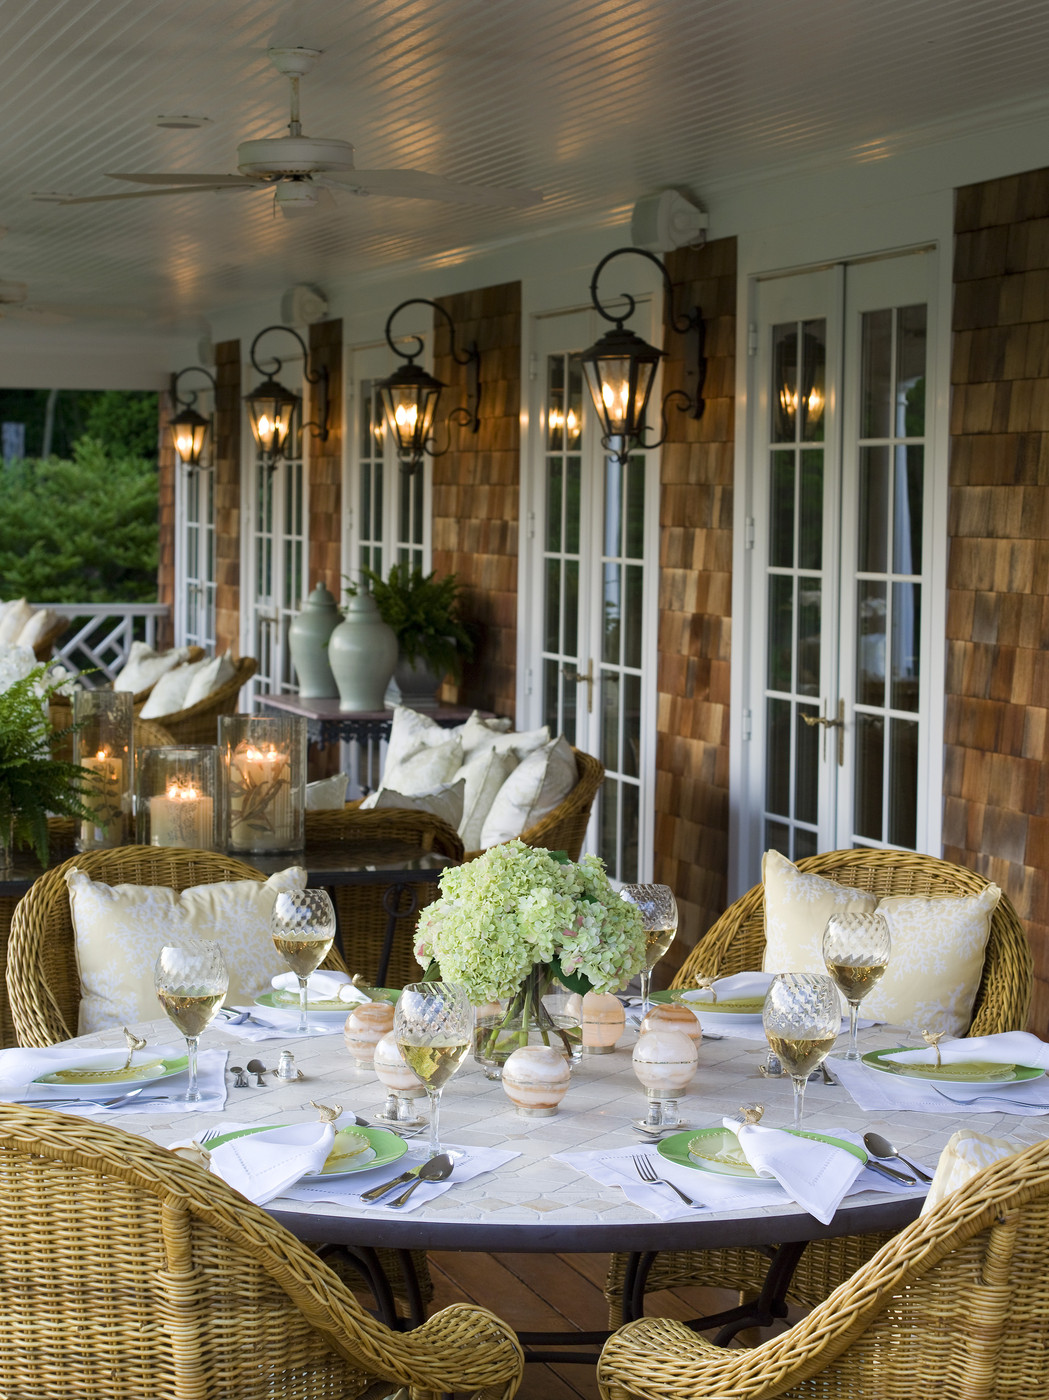 Brown Country Patio - Outdoor Patio Design Ideas - Lonny on Country Patio Ideas id=71319